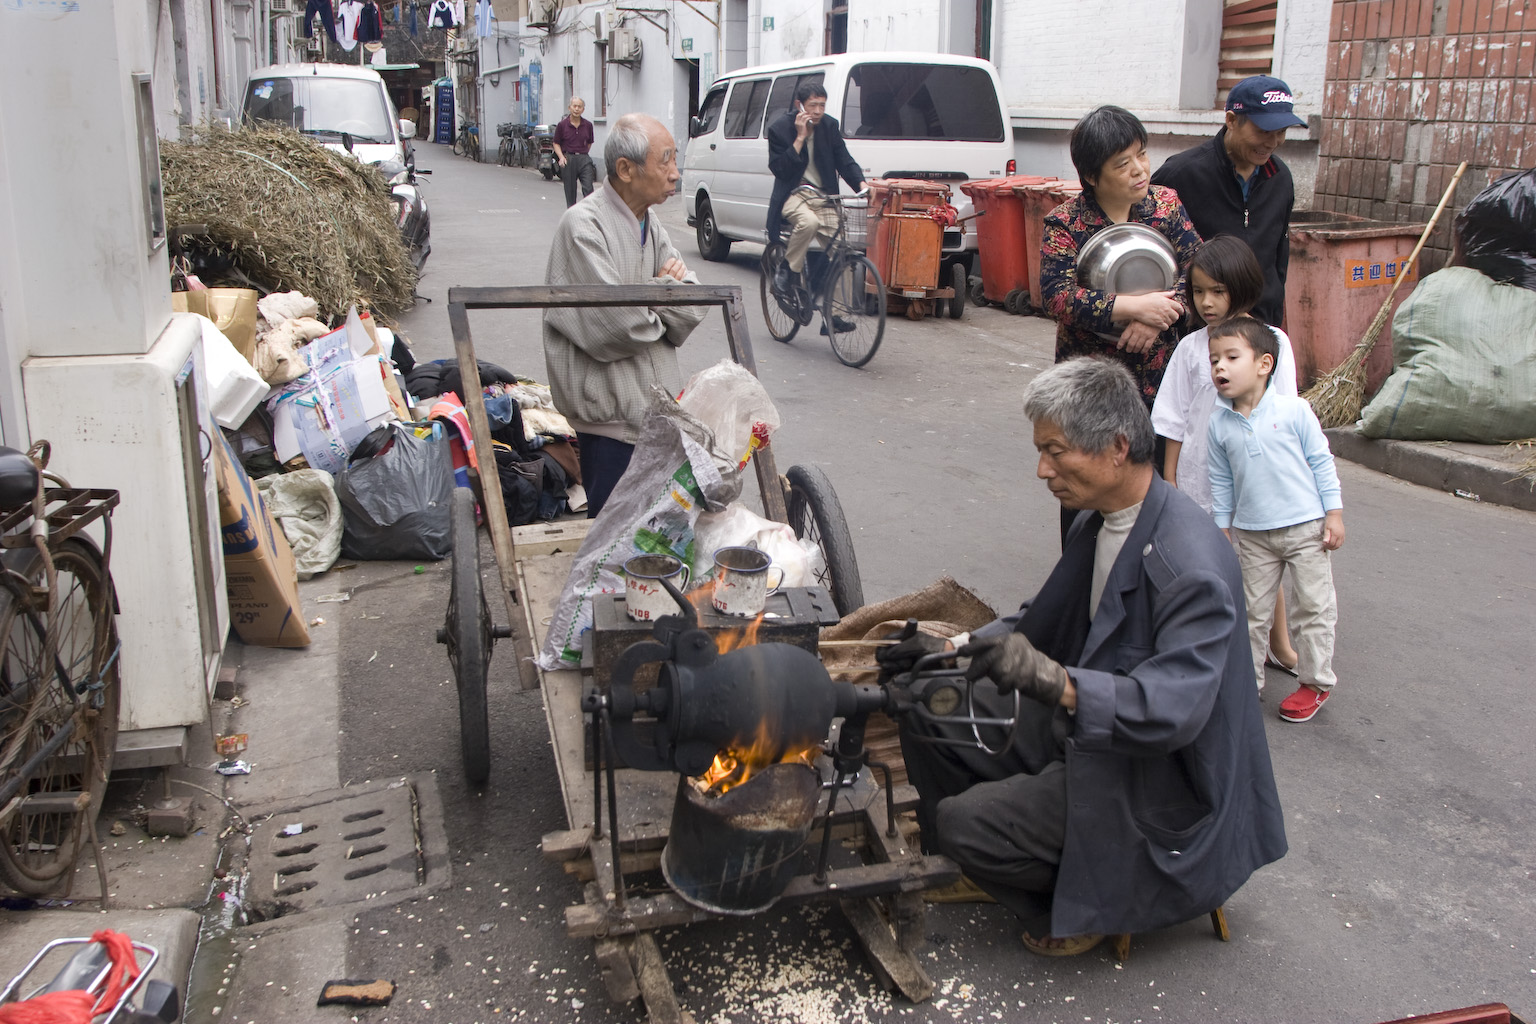 Making popcorn, Old City, Shanghai, May 2011.  Photograph by Jamie Carstairs.